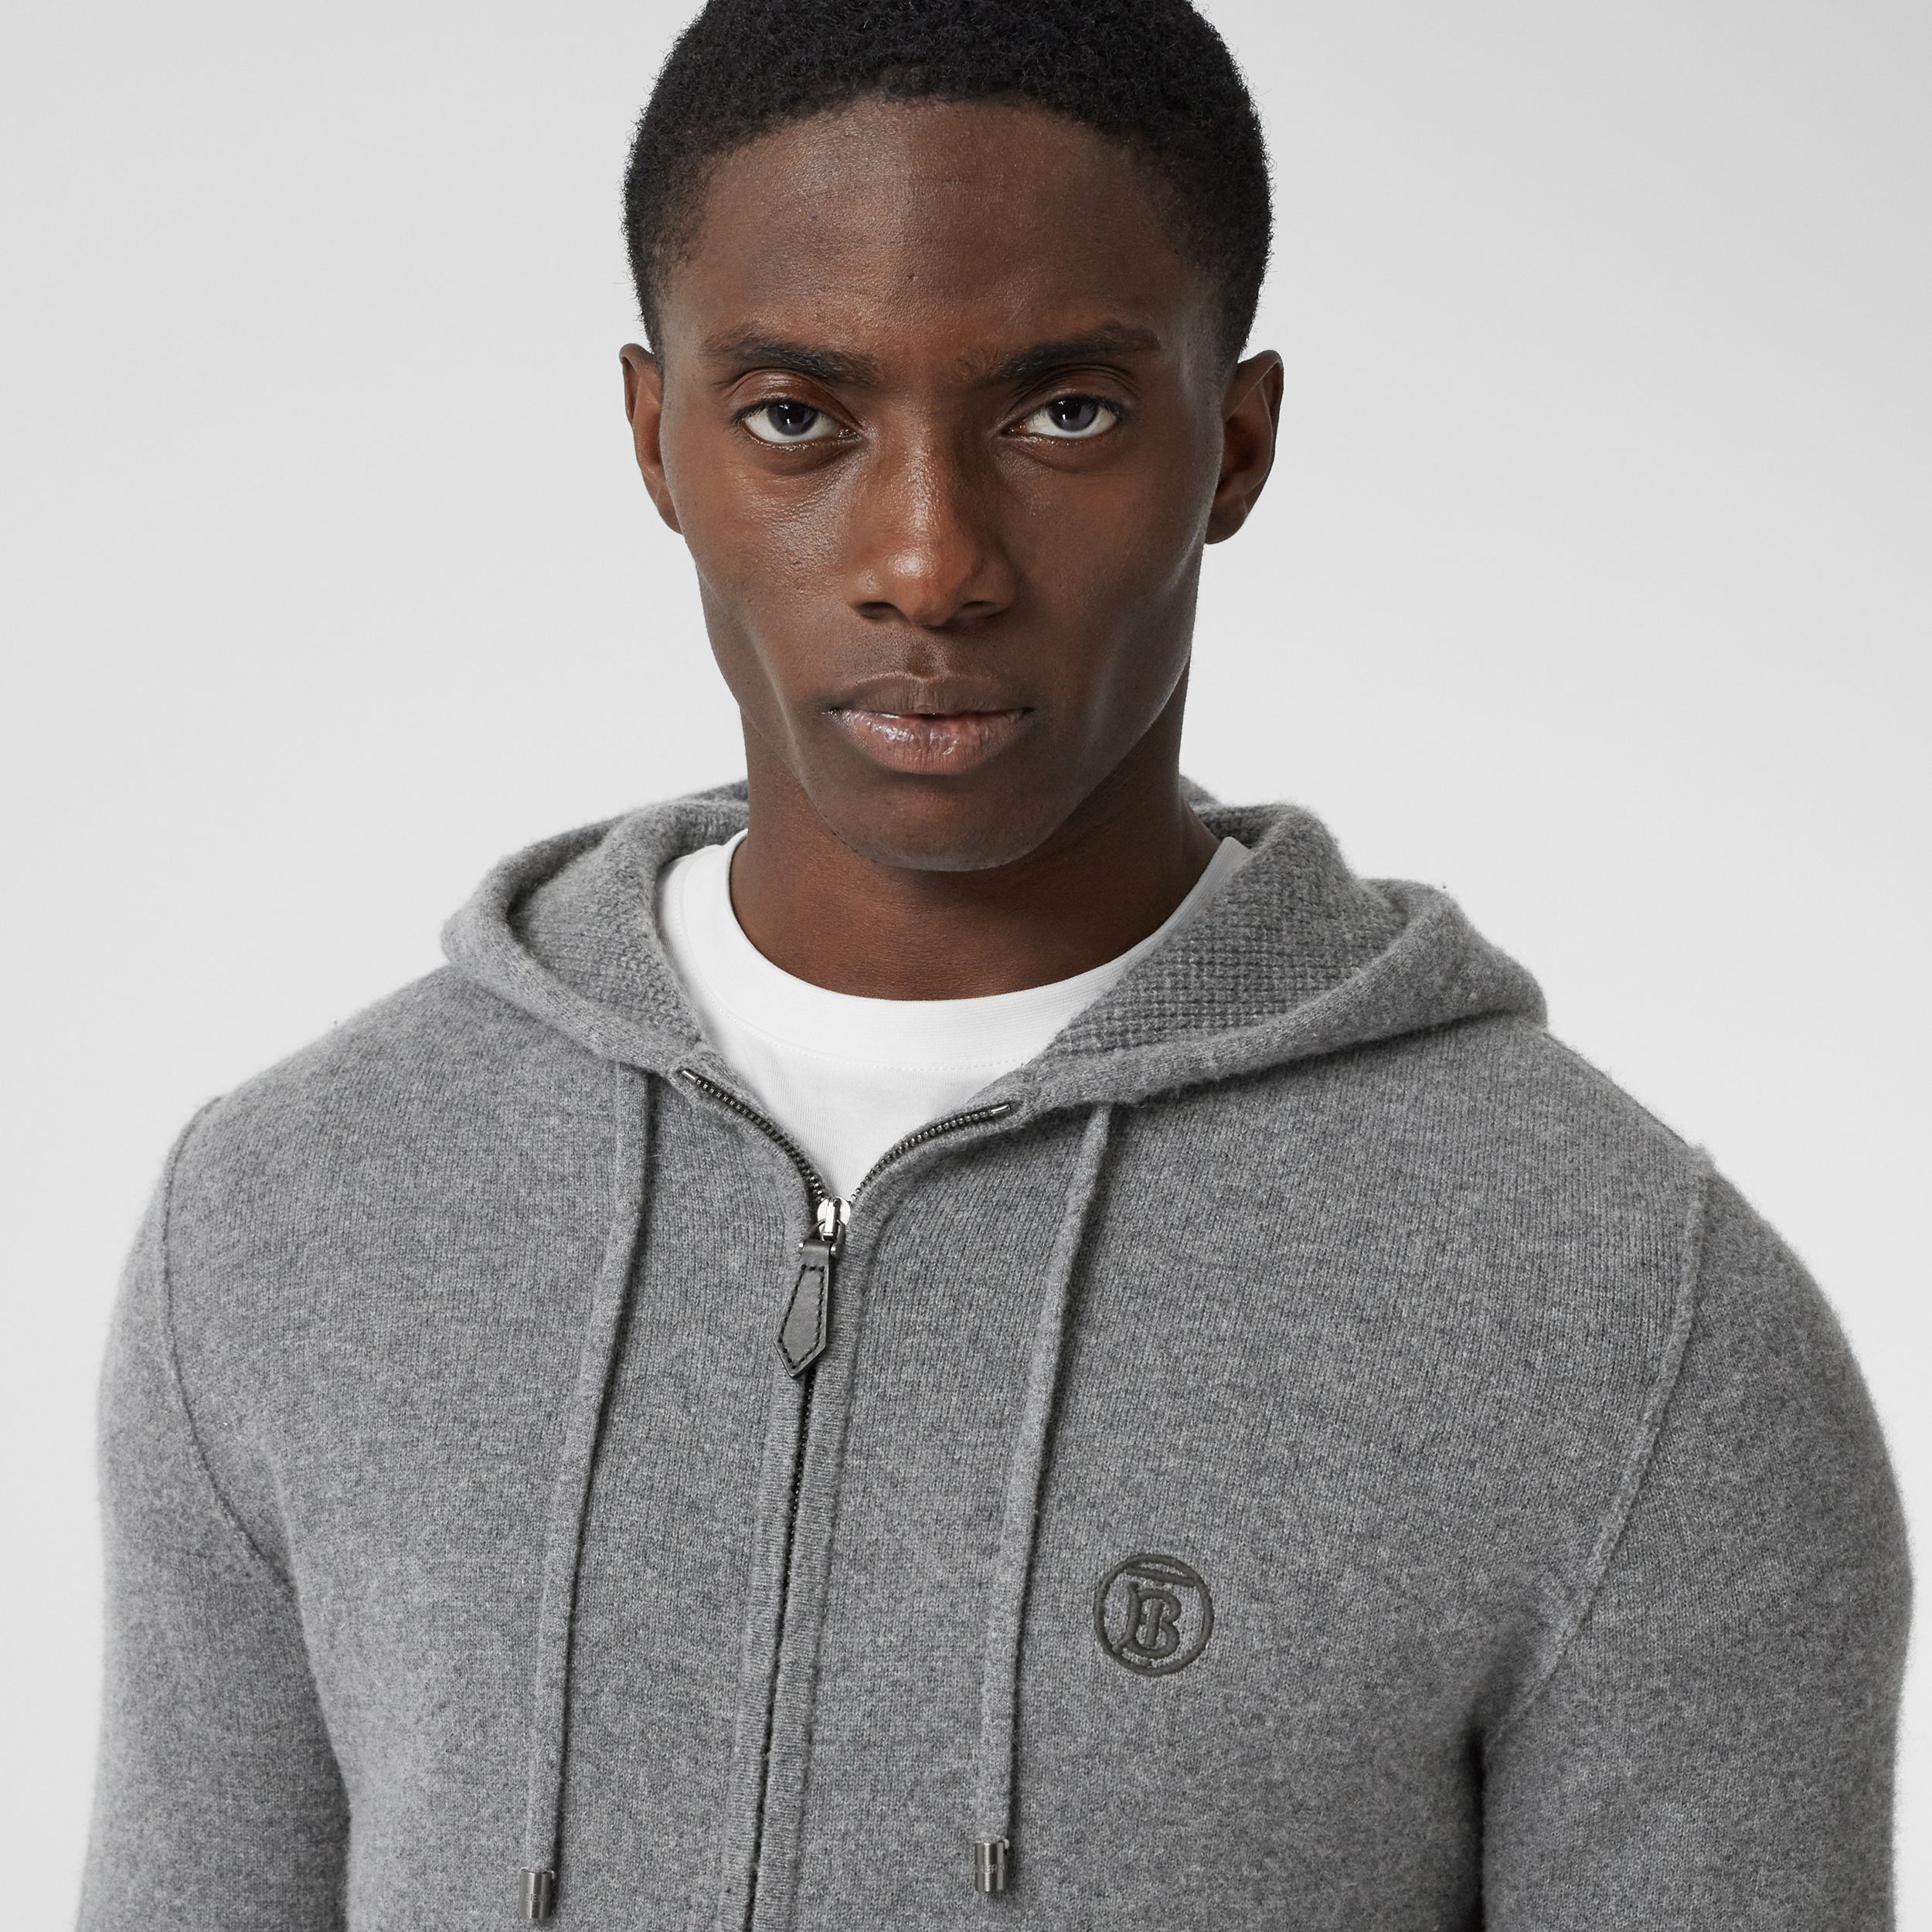 Monogram Motif Cashmere Blend Hooded Top in Mid Grey Melange - Men | Burberry Hong Kong S.A.R. - 2